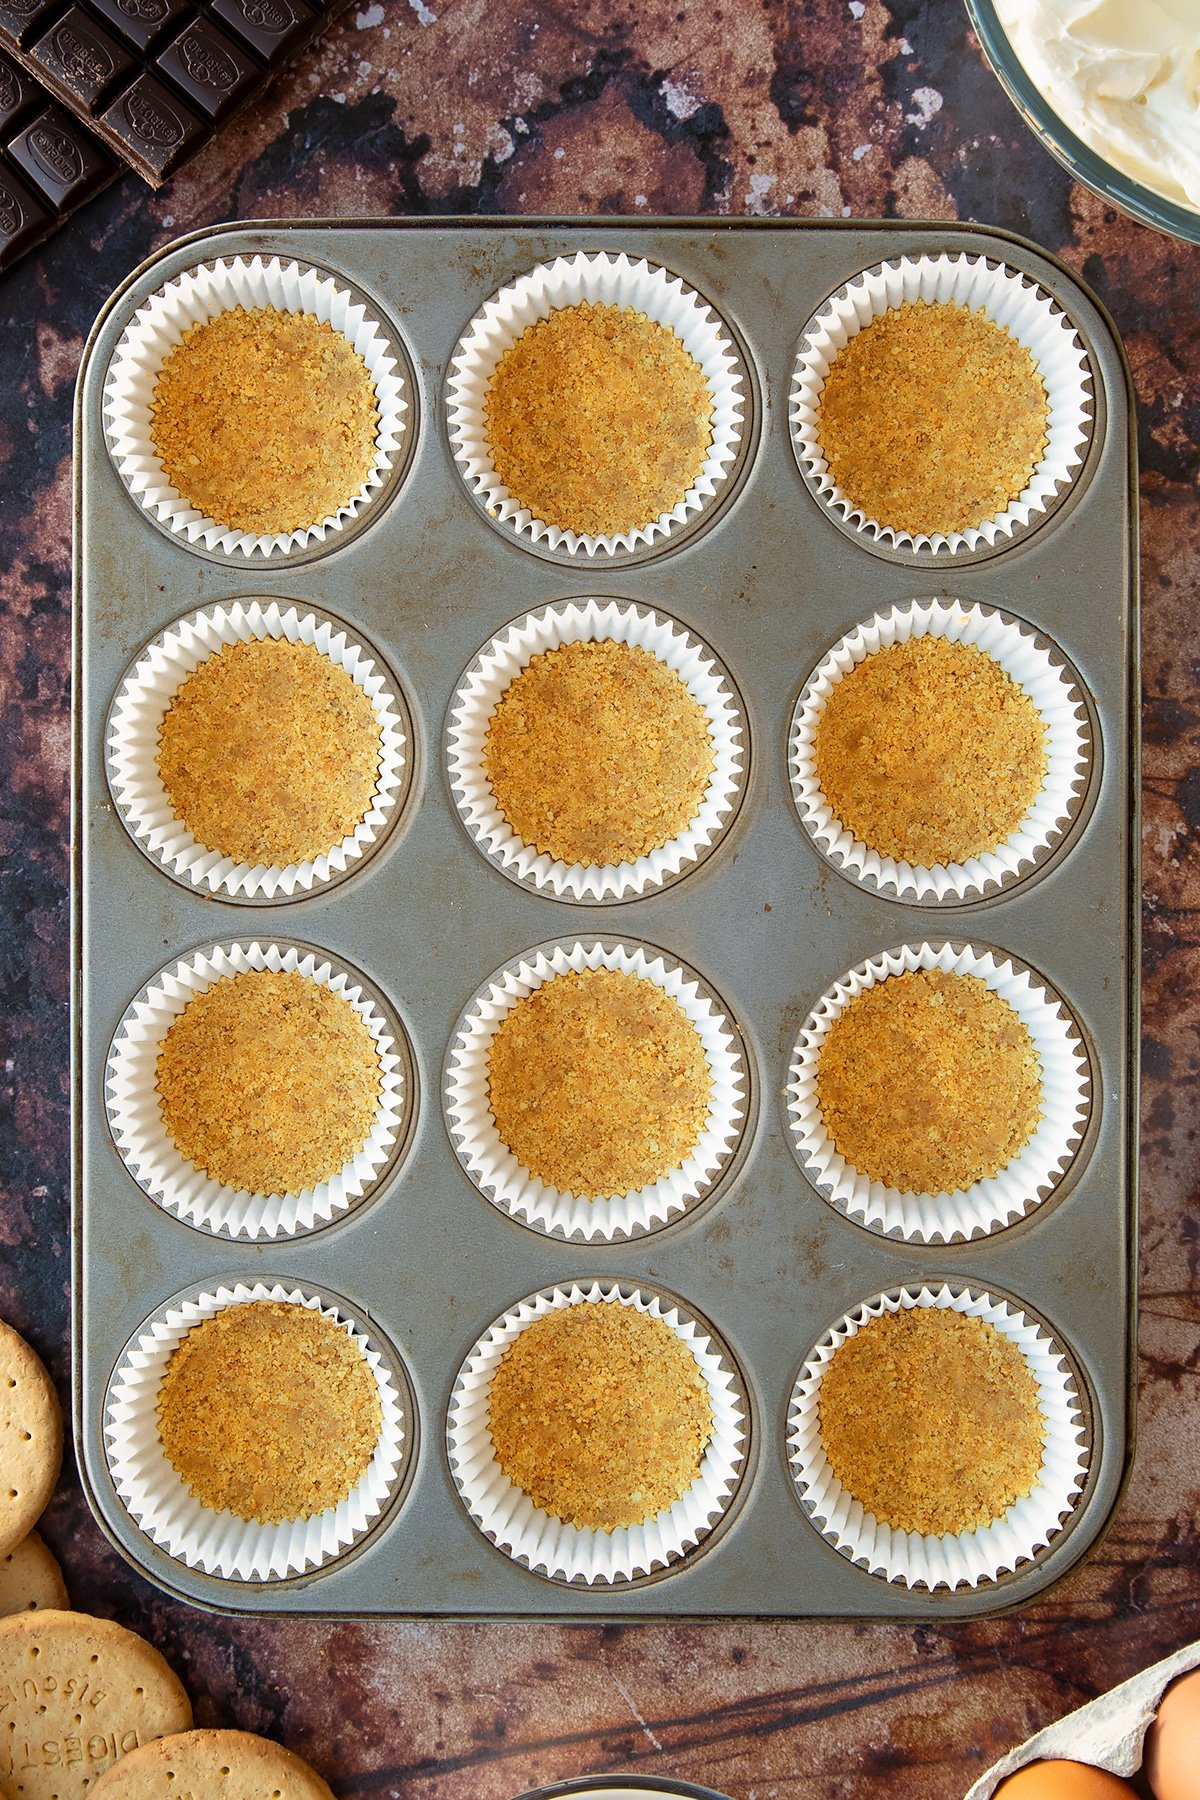 Crushed digestive biscuits mixed with melted butter pressed into cupcake cases in a muffin tray. Ingredients to make chocolate cheesecake cupcakes surround the tray.